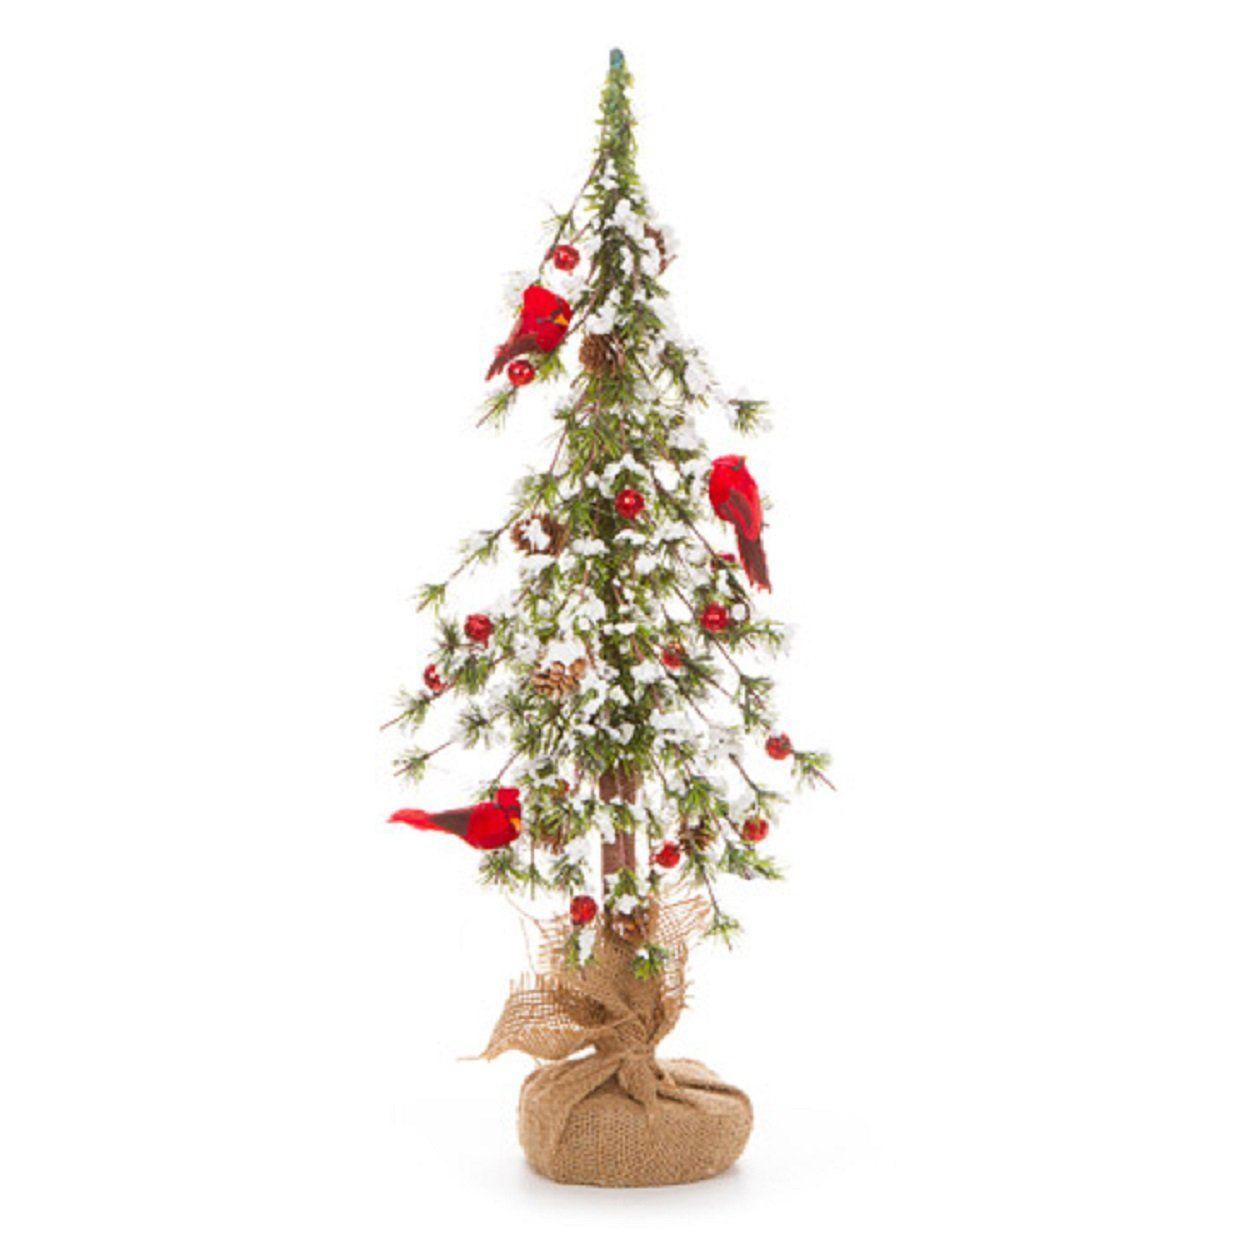 Artificial Christmas Trees Cardinal Red Pine Cones With Berries And Snow Unlit For Home Decor Burlap Christmas Tree Christmas Decorations Small Christmas Trees